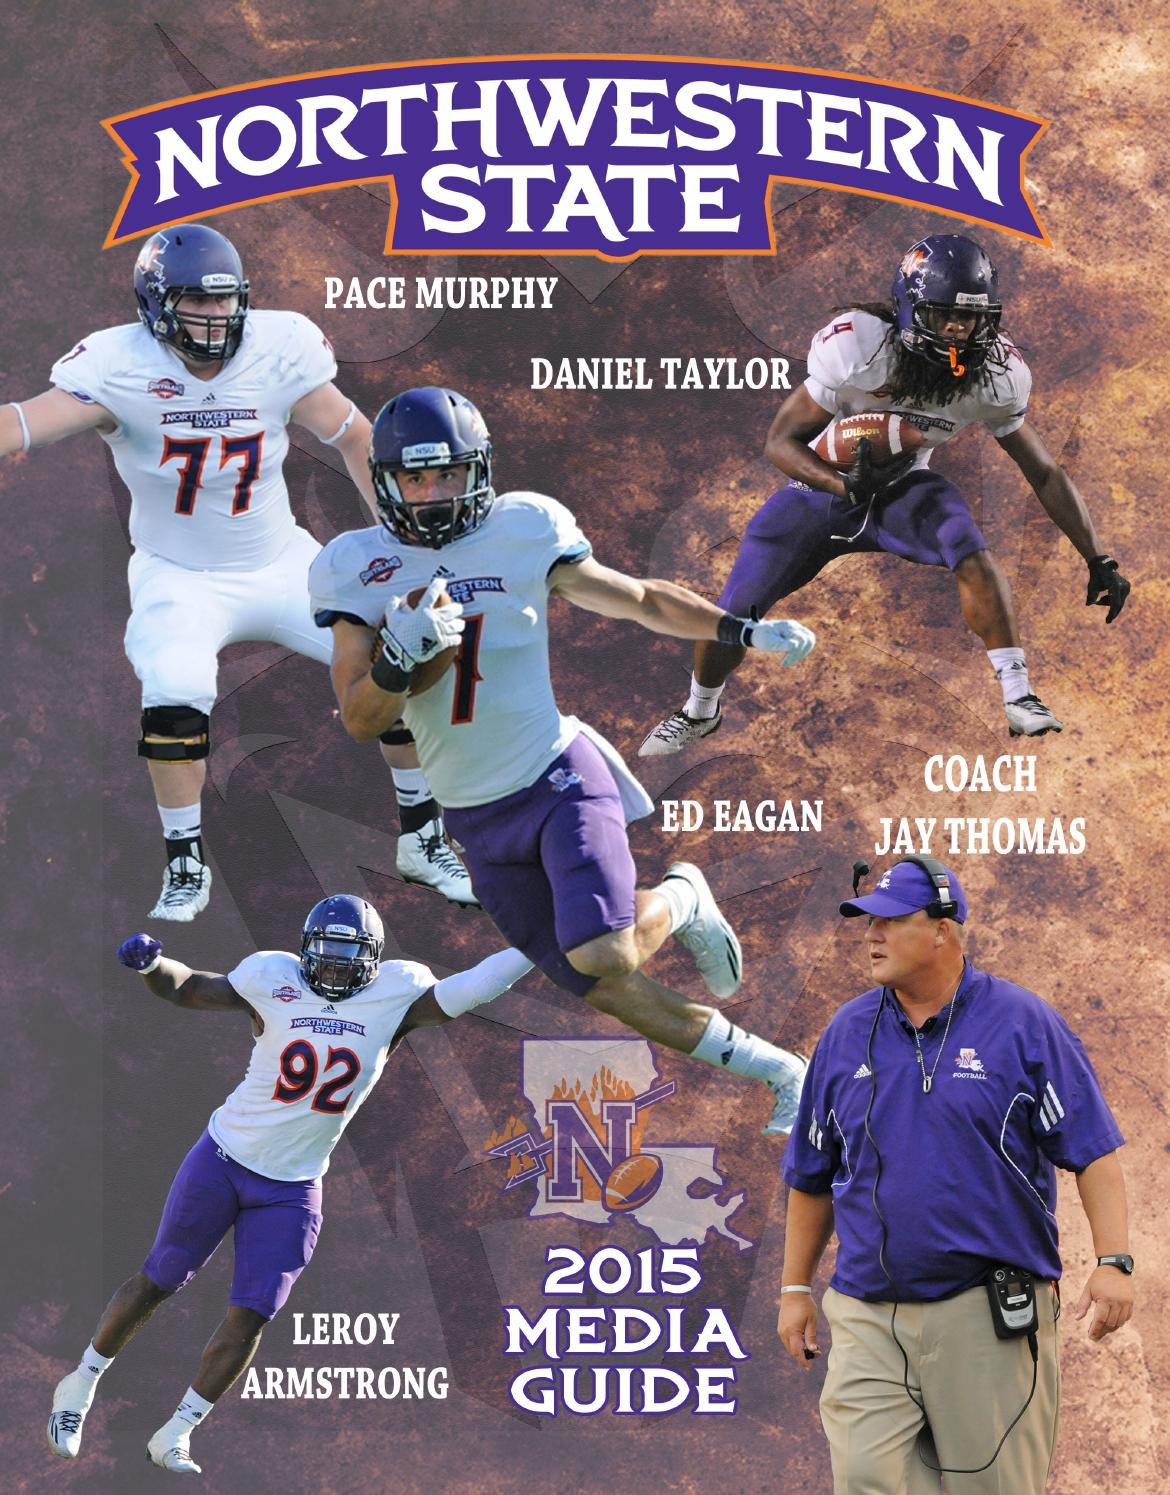 2015 northwestern state football media guide by northwestern state